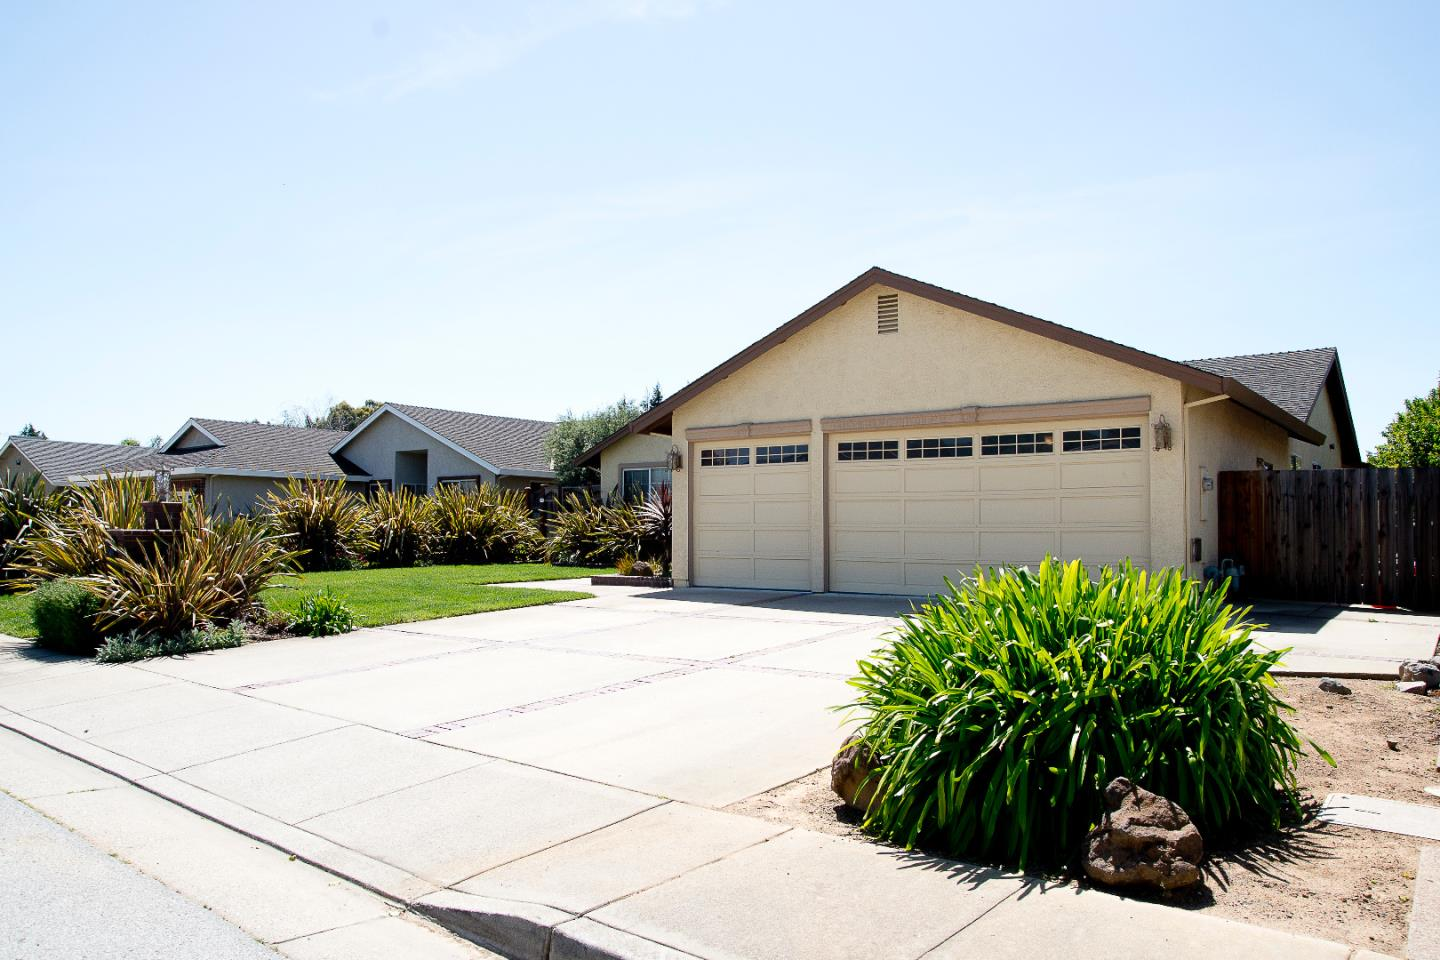 Additional photo for property listing at 17399 Walnut Grove Drive  Morgan Hill, California 95037 United States